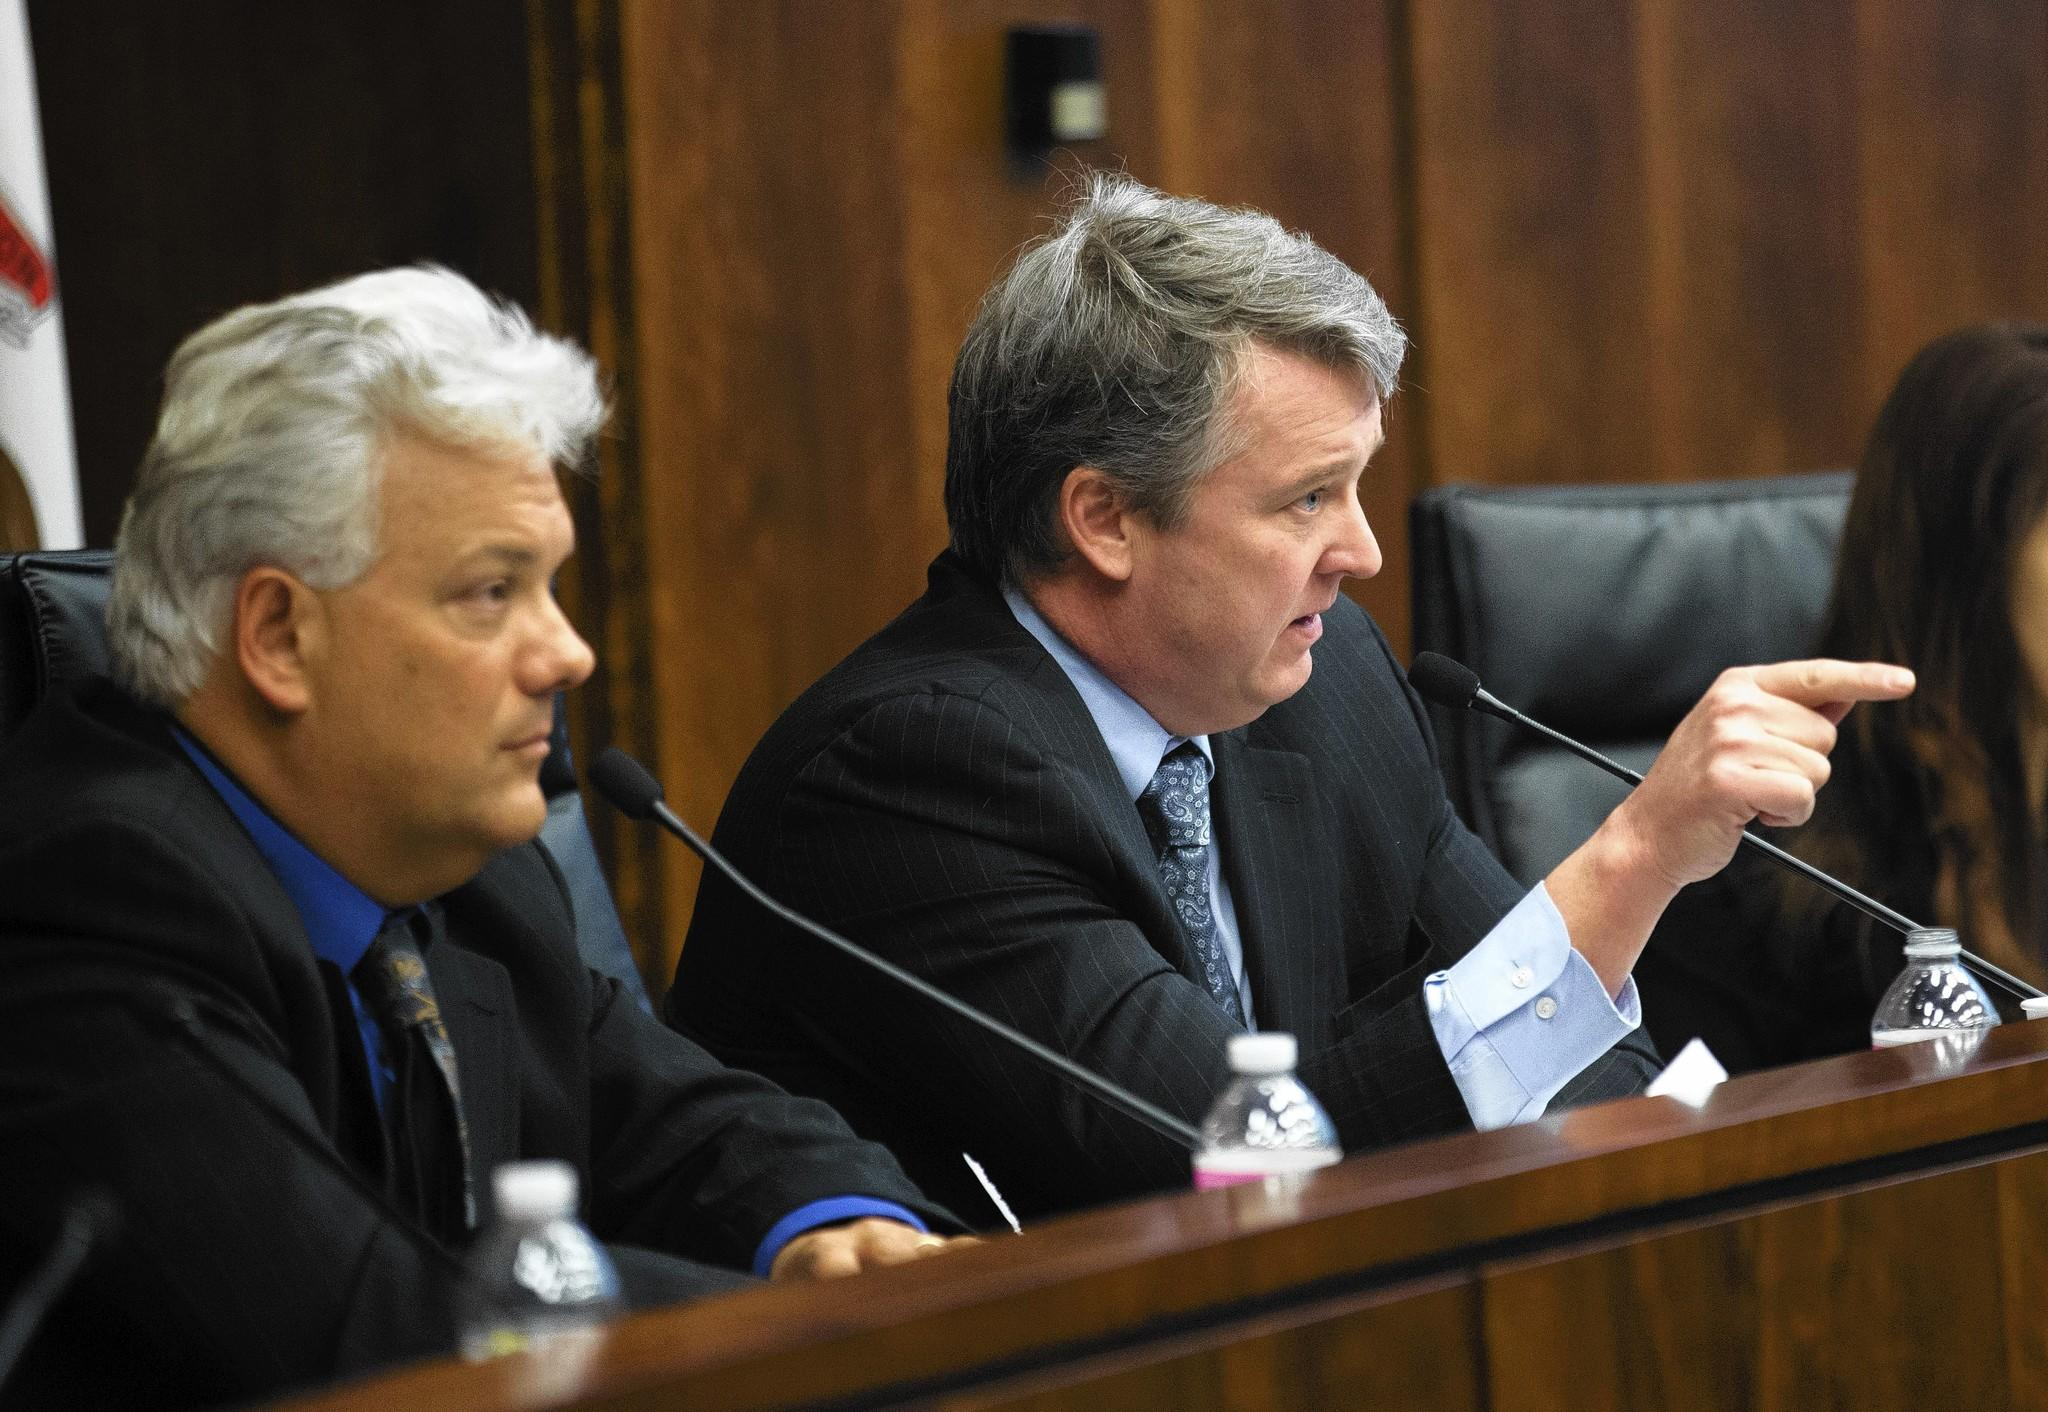 Reps. Jack Franks, D-Marengo, left, and John Bradley, D-Marion, discuss the future of economic incentives for businesses that locate in Illinois during a joint hearing Friday of the State Government Administration Committee and the Revenue and Finance Committee.